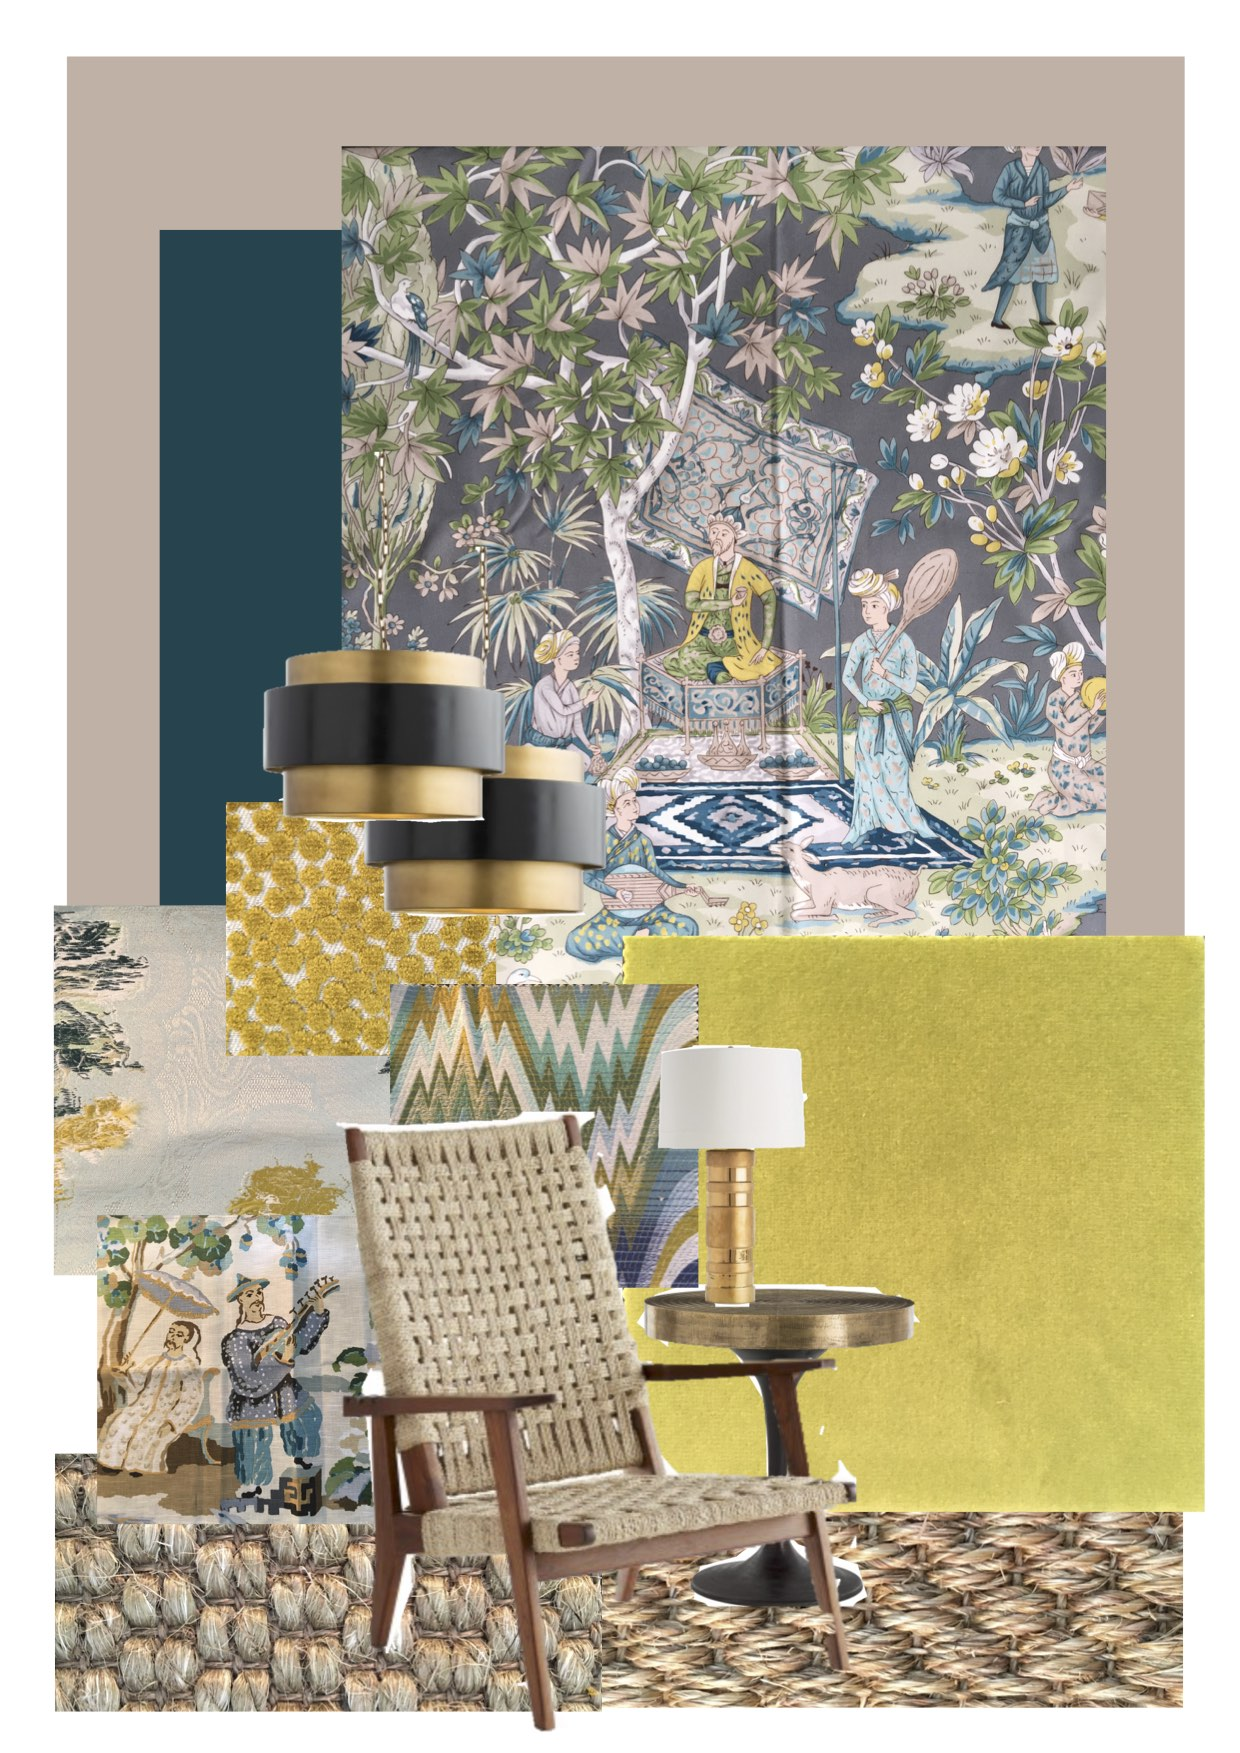 Moodboard of materials and colours: 'Lodi Garden' in grey and 'Xian' in Seafoam from Brunschwig et Fils; 'Acid Palm' in surf by Jonathan Adler for Kravet; 'Polka Dot Plush' in quince also by Kravet; 'Say Goodbye Flora' by Dedar, as is the Cedre coloured velvet. Paints: 'Marine Blue' and 'Light Peach Blossom' both from The Little Greene Paint company.